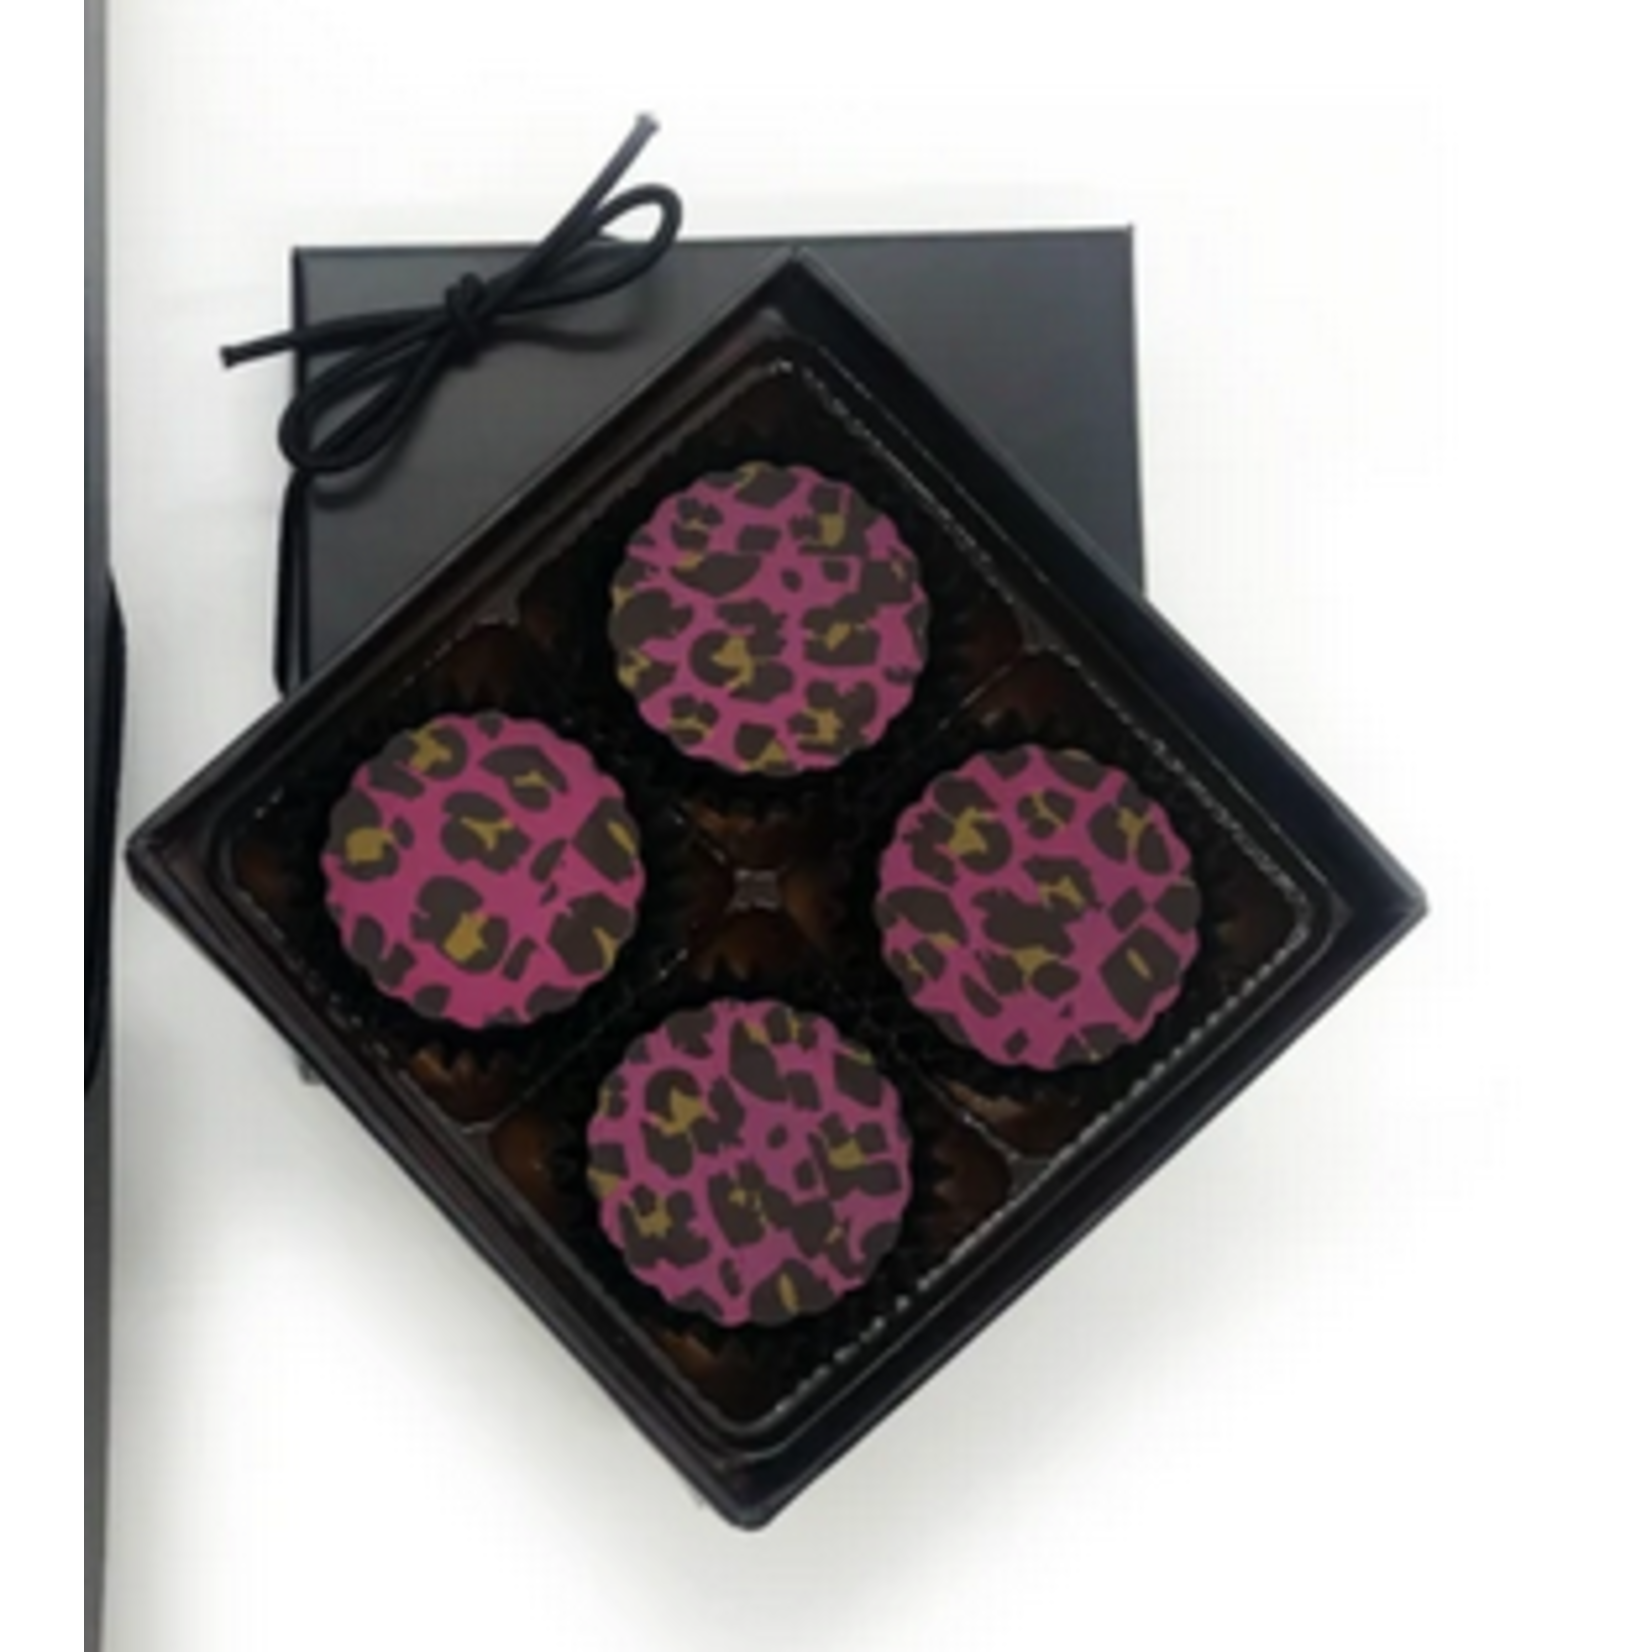 Buoyant Brands Buoyant Lilly's Original Chocolate Covered Cherry Caramels